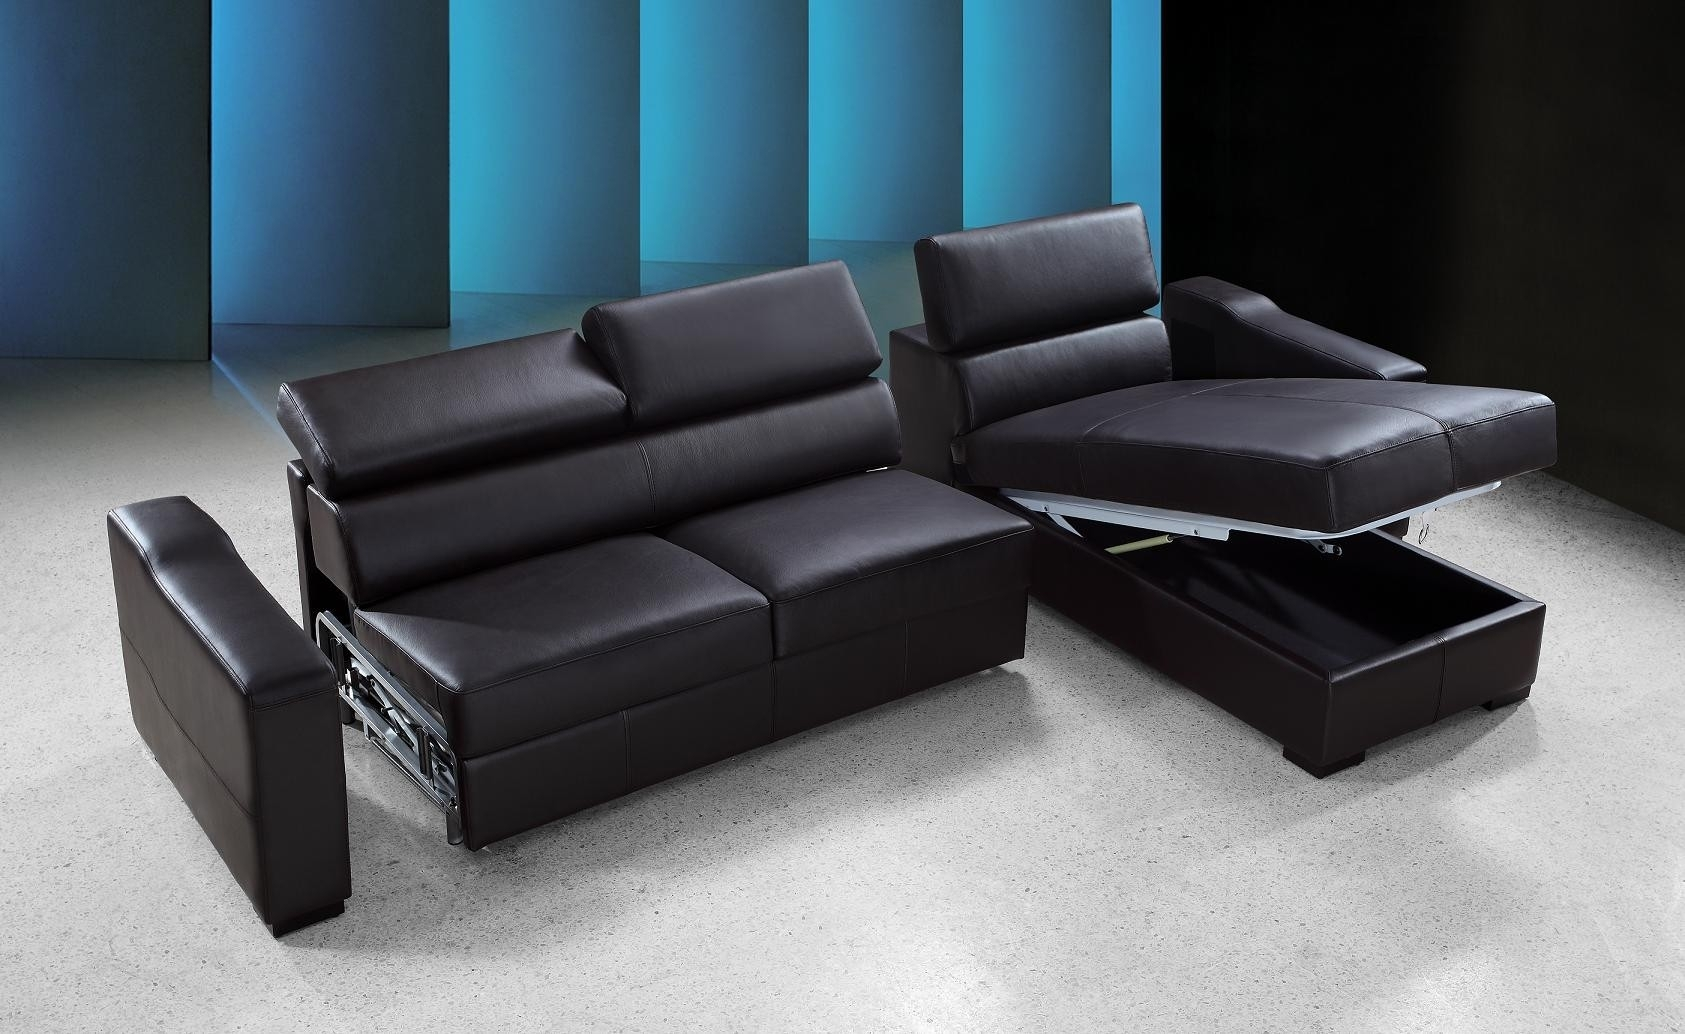 Sofa : Stunning Sectional Sofa Bed Apk 27801 2S 10X8 Cropafhs Pdp regarding 10X8 Sectional Sofas (Image 7 of 10)